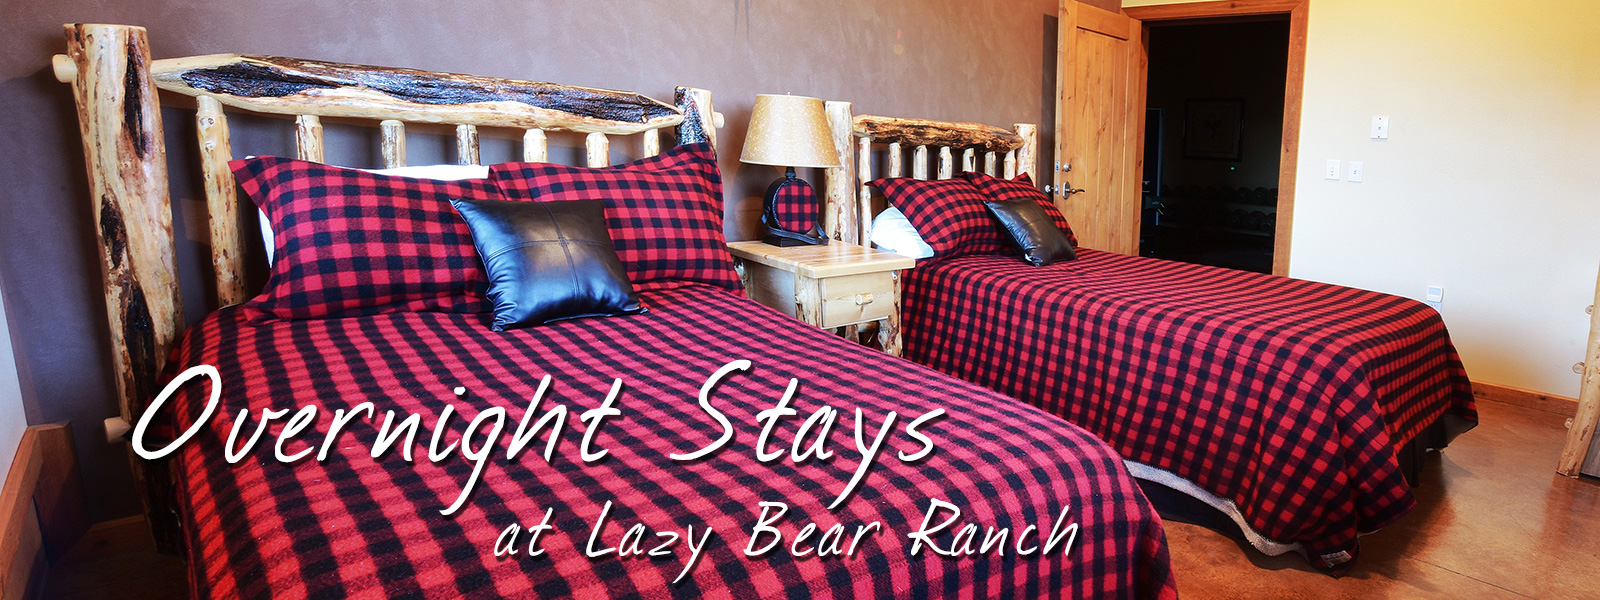 Overnight stays at the Lazy Bear Bunkhouse and Guest Quarters